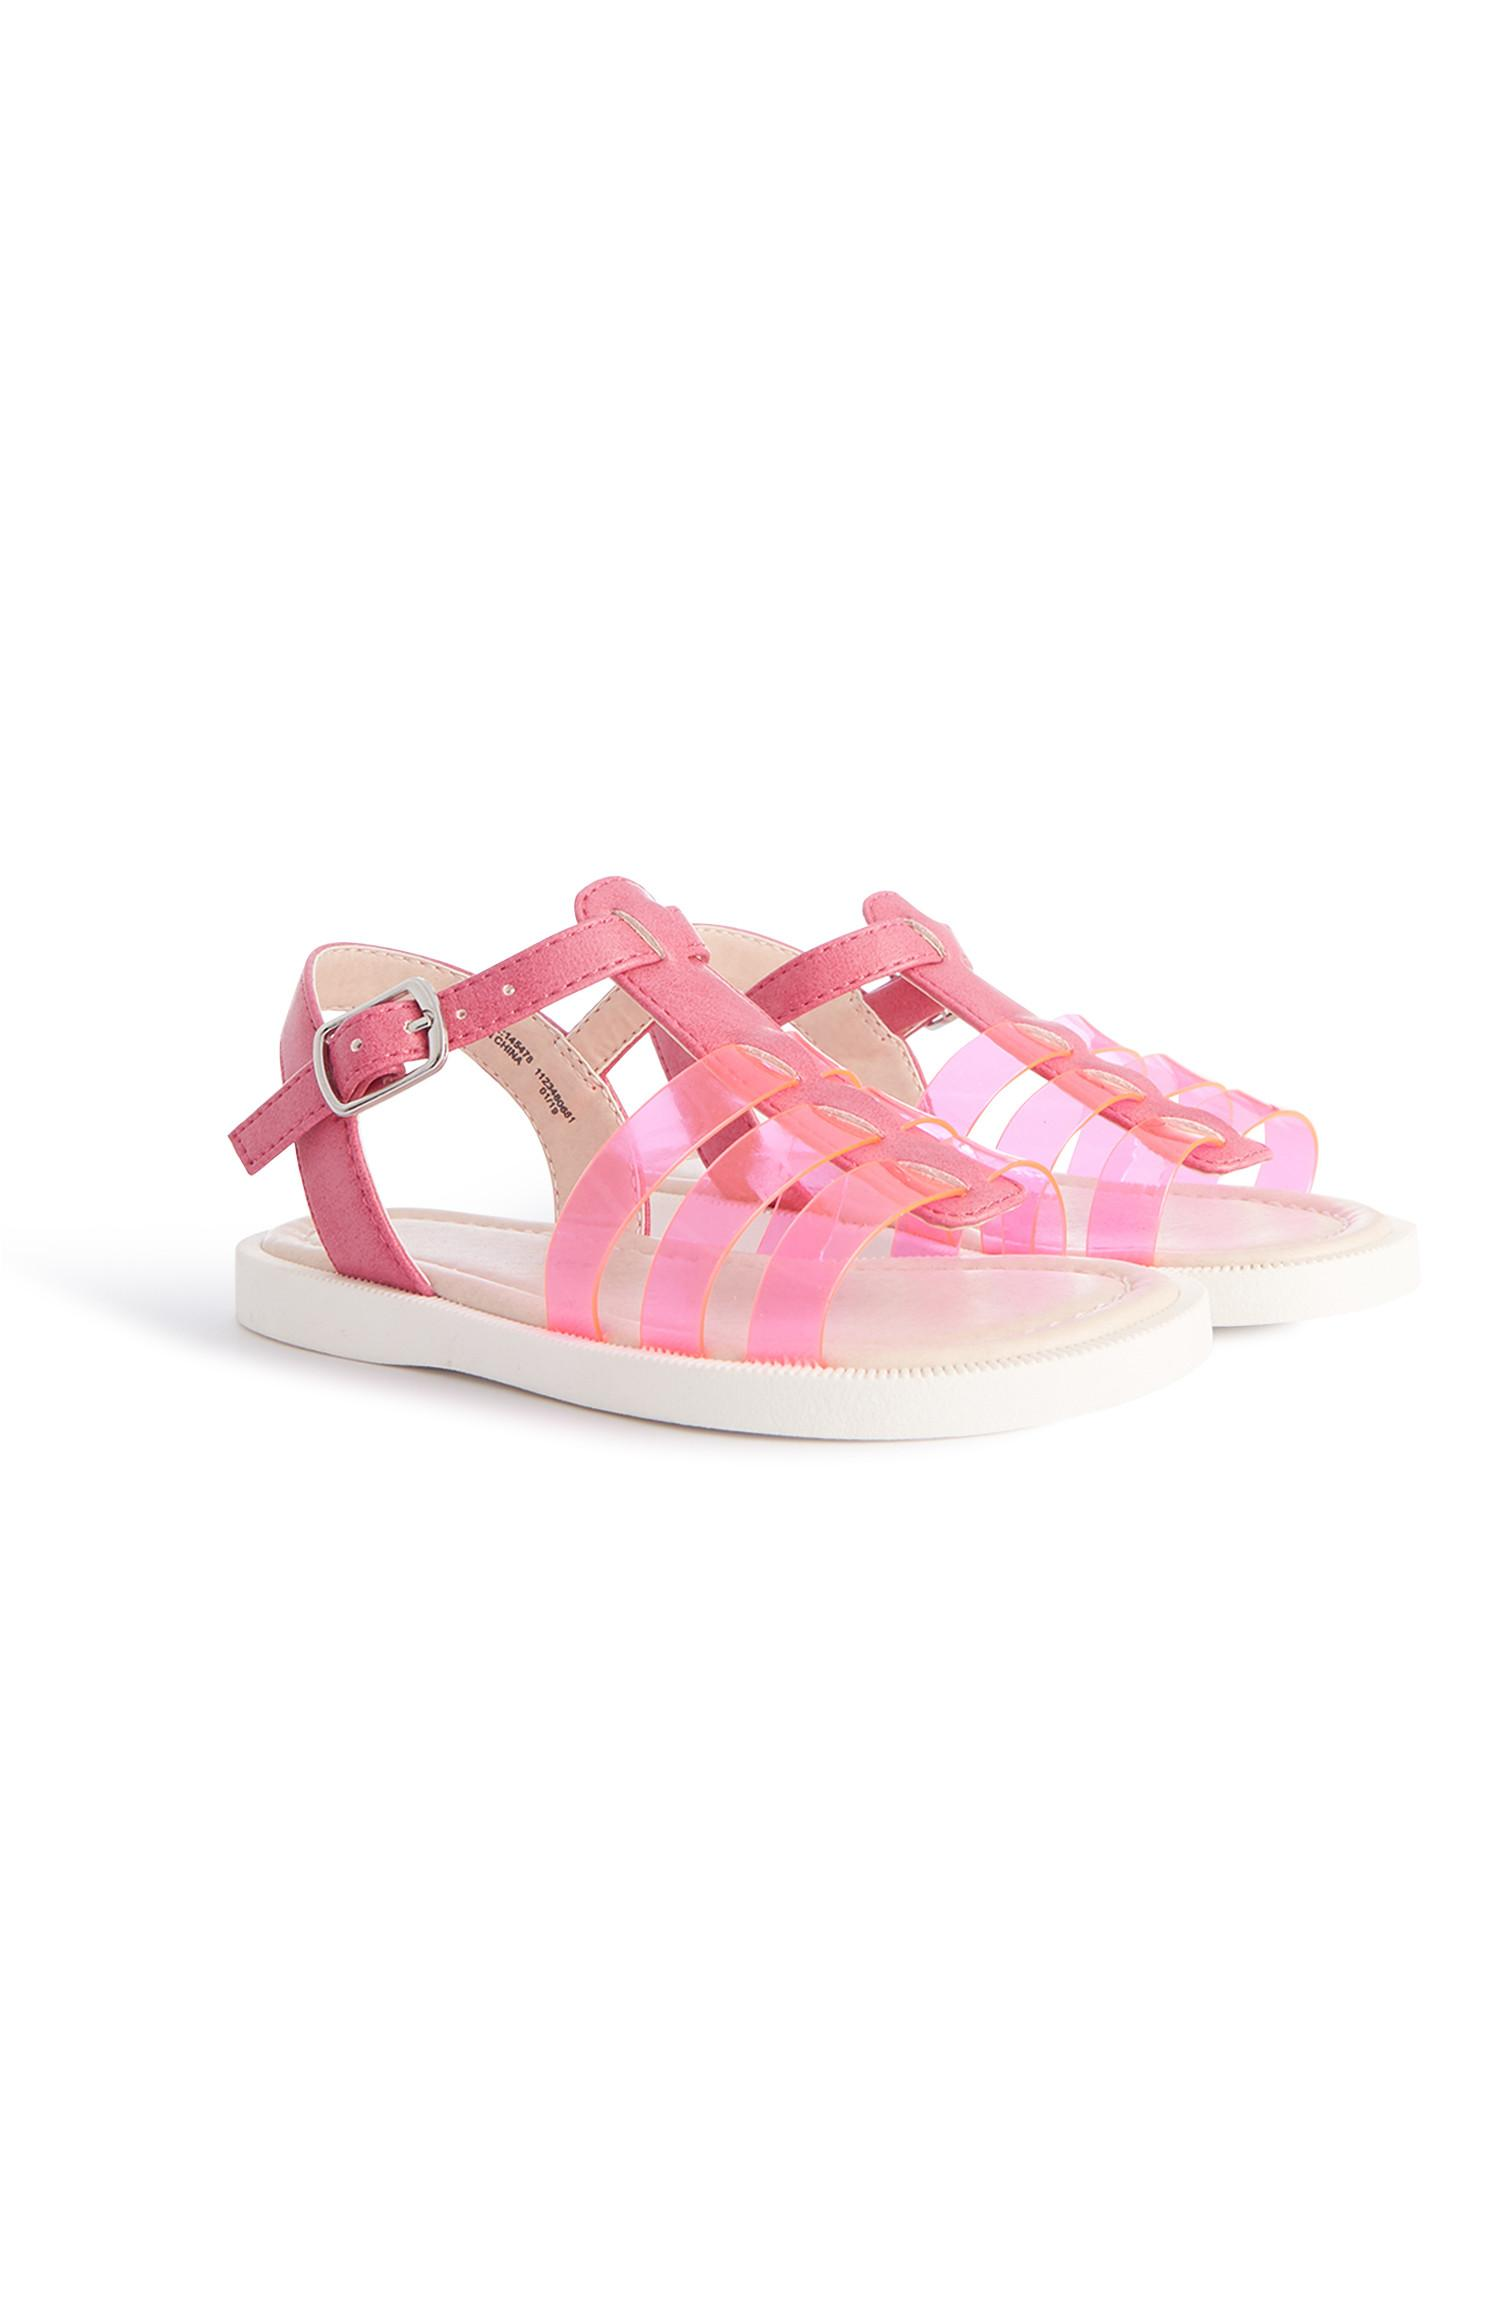 Younger Girl Pink Sandals